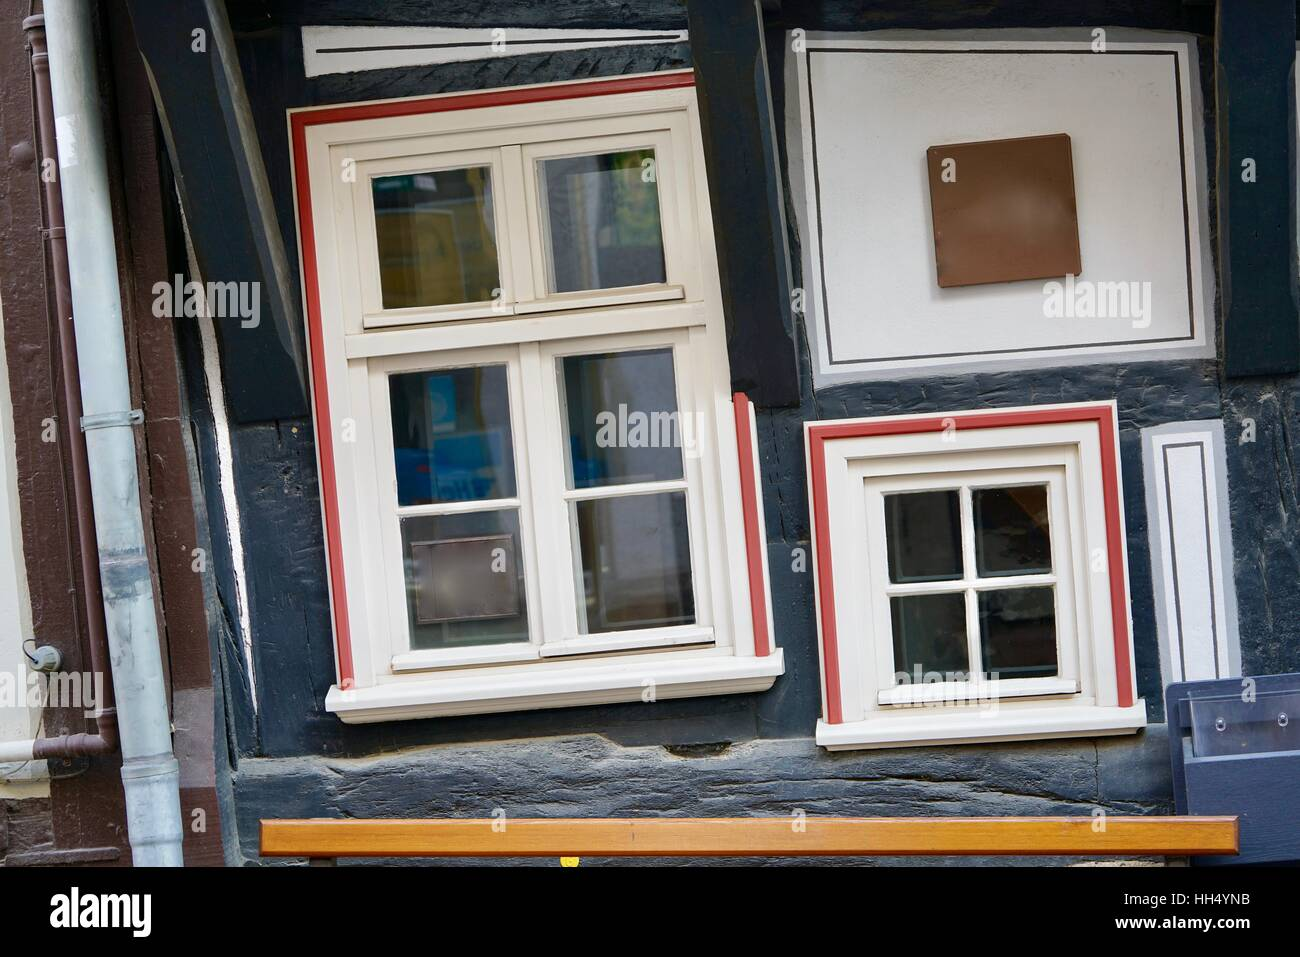 skew windows of an old house in Fritzlar, Germany - Stock Image